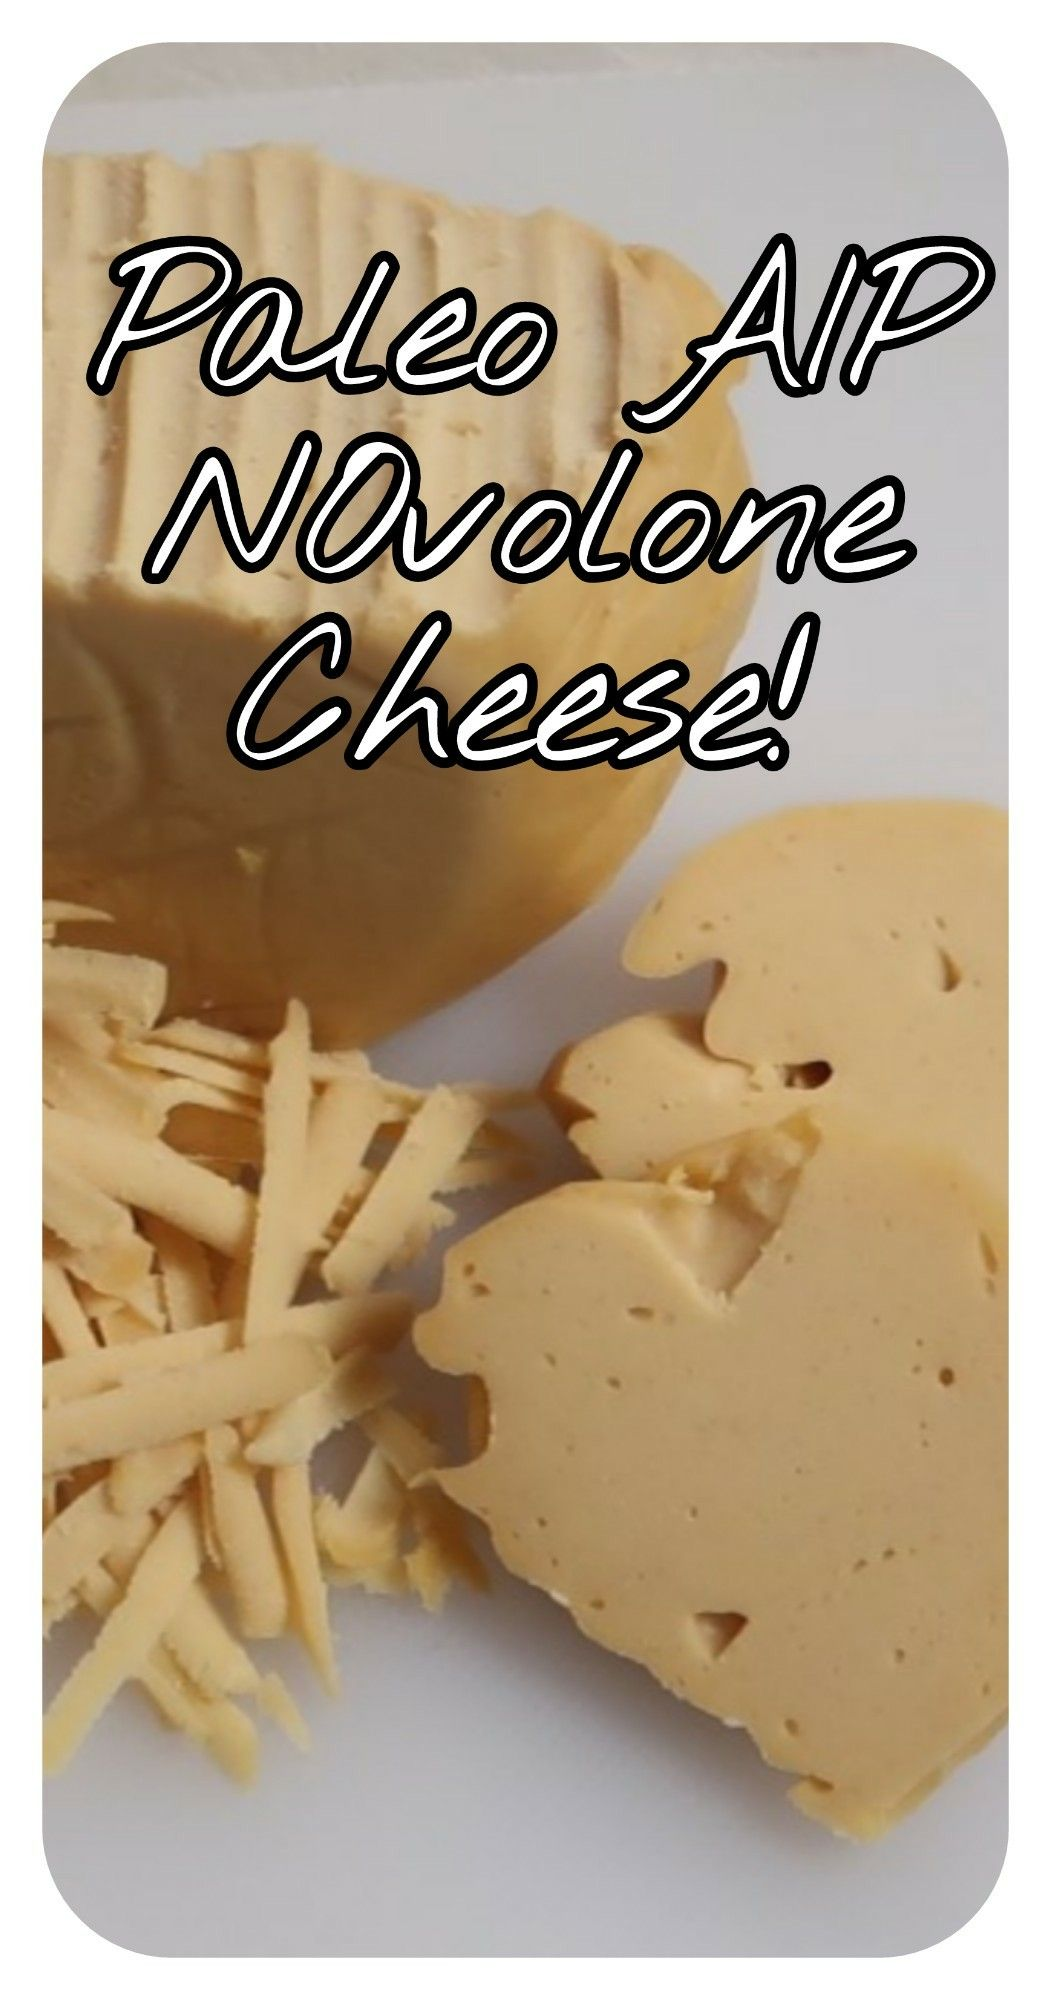 Paleo Aip Cheese This Novolone Cheese Has An Amazing Rich